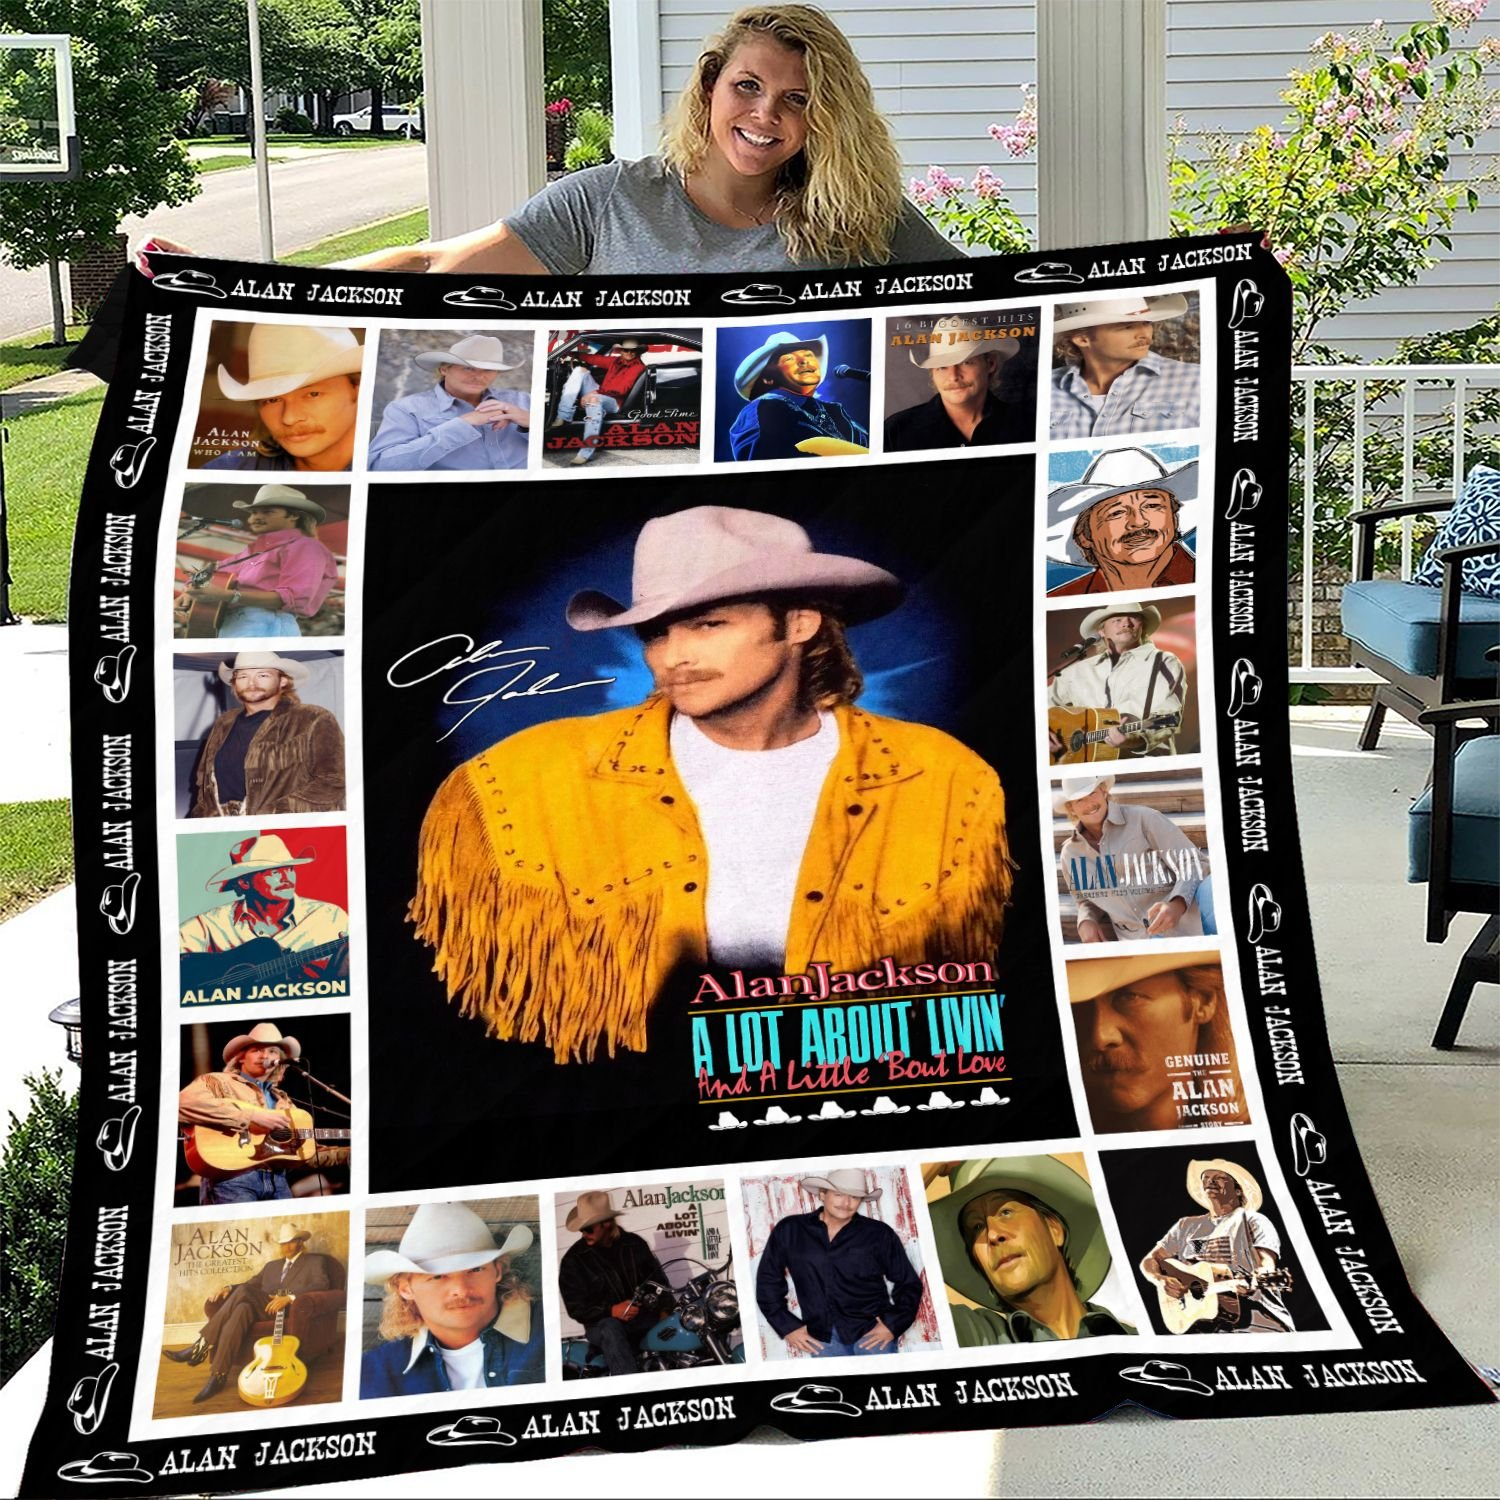 Alan Jackson A Lot About Livin' and A Little 'Bout Love Fleece Blanket